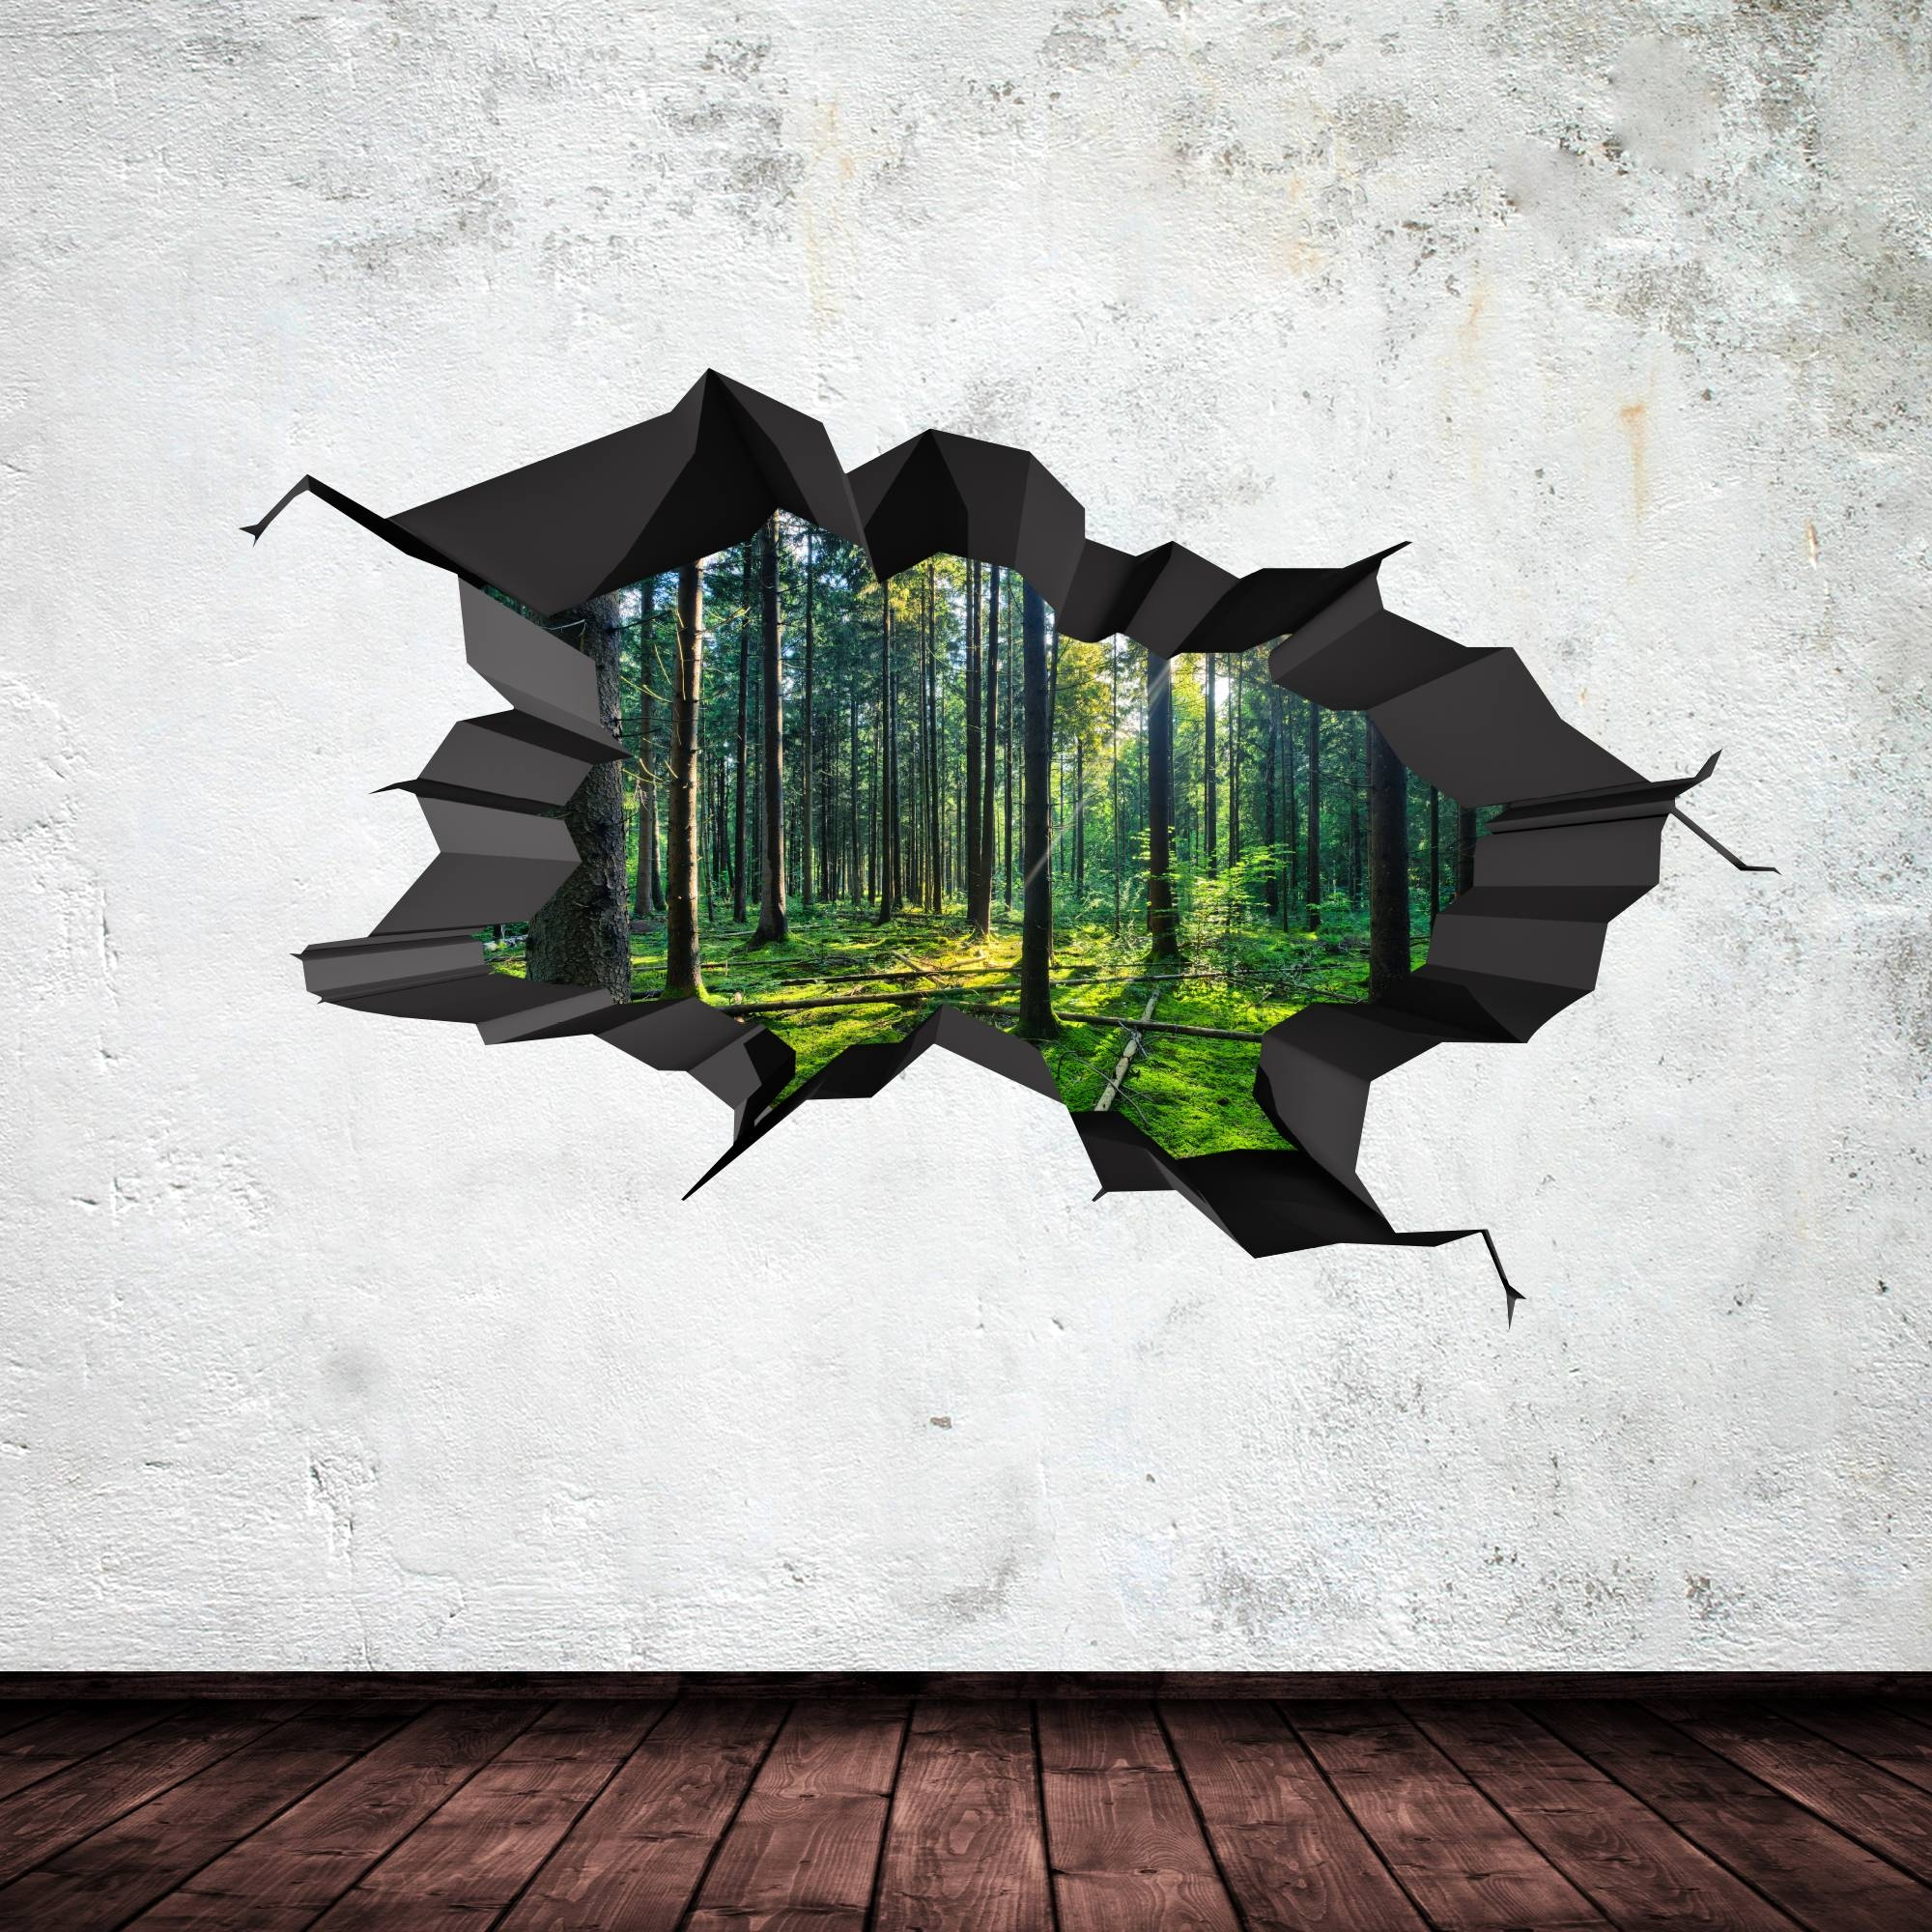 Full Colour Woods Forest Trees Jungle Cracked 3D Wall Art Sticker With Regard To Most Popular Venezuela Wall Art 3D (View 12 of 20)